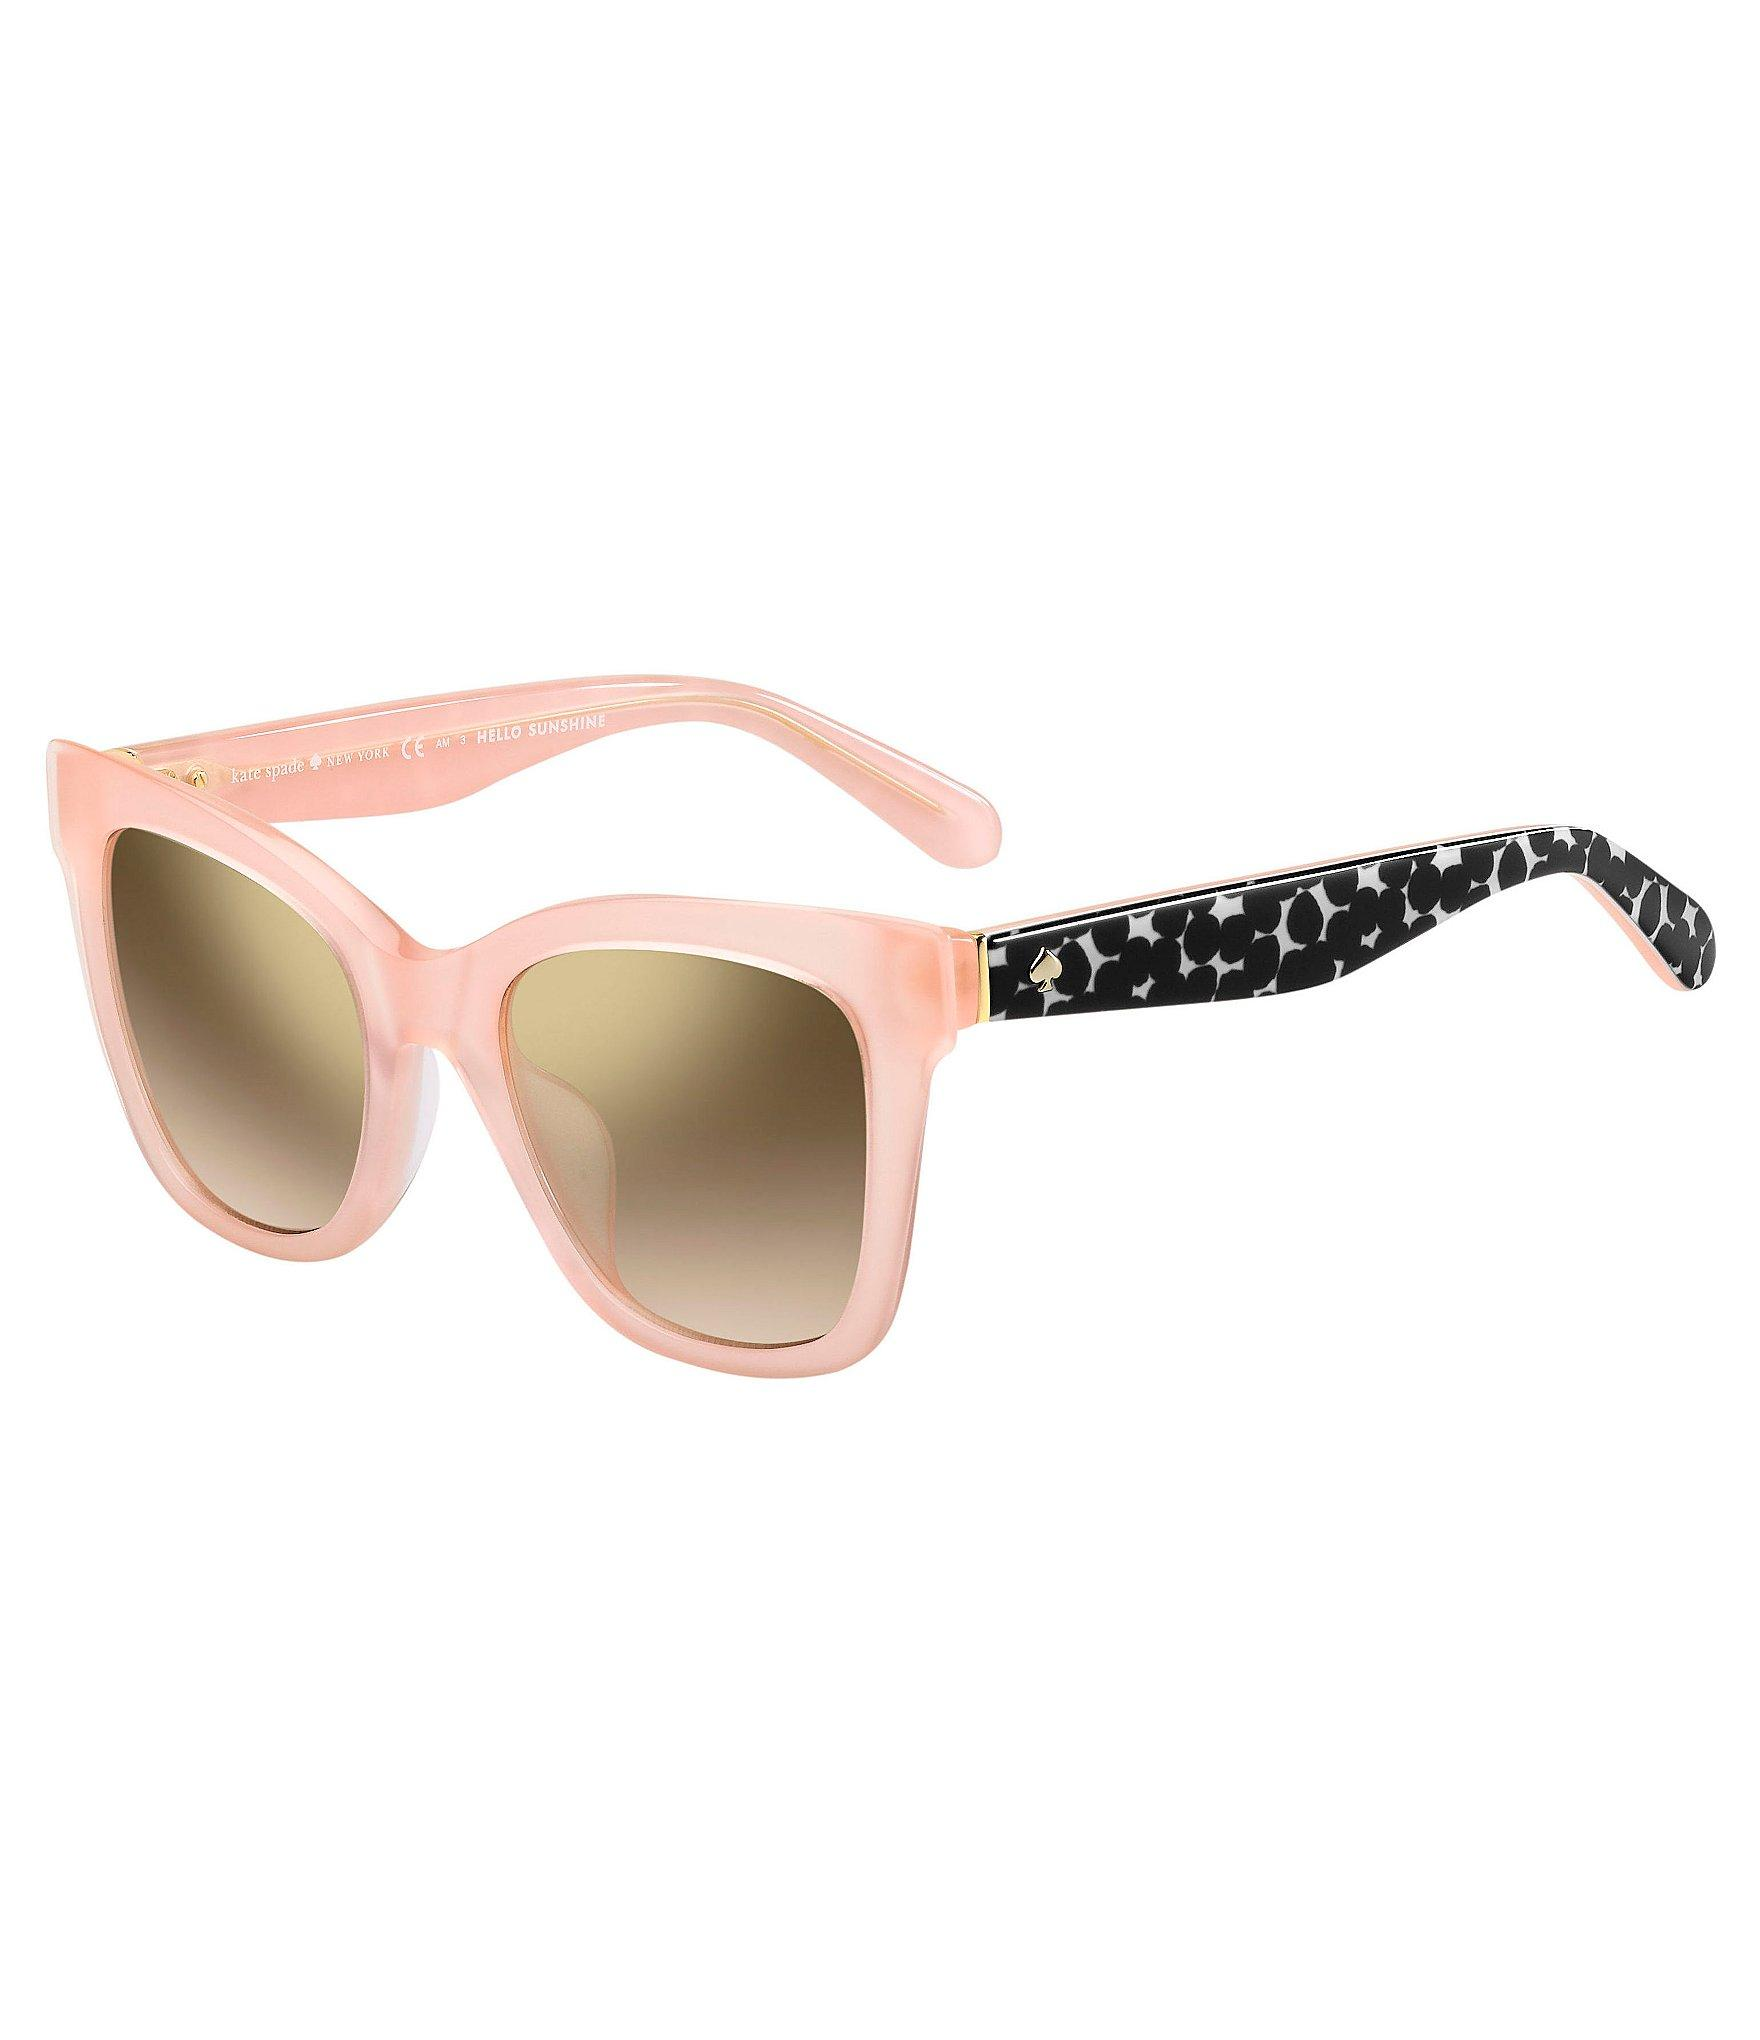 f9b7a10970 Lyst - Kate Spade Emmylou Square Sunglasses in Pink